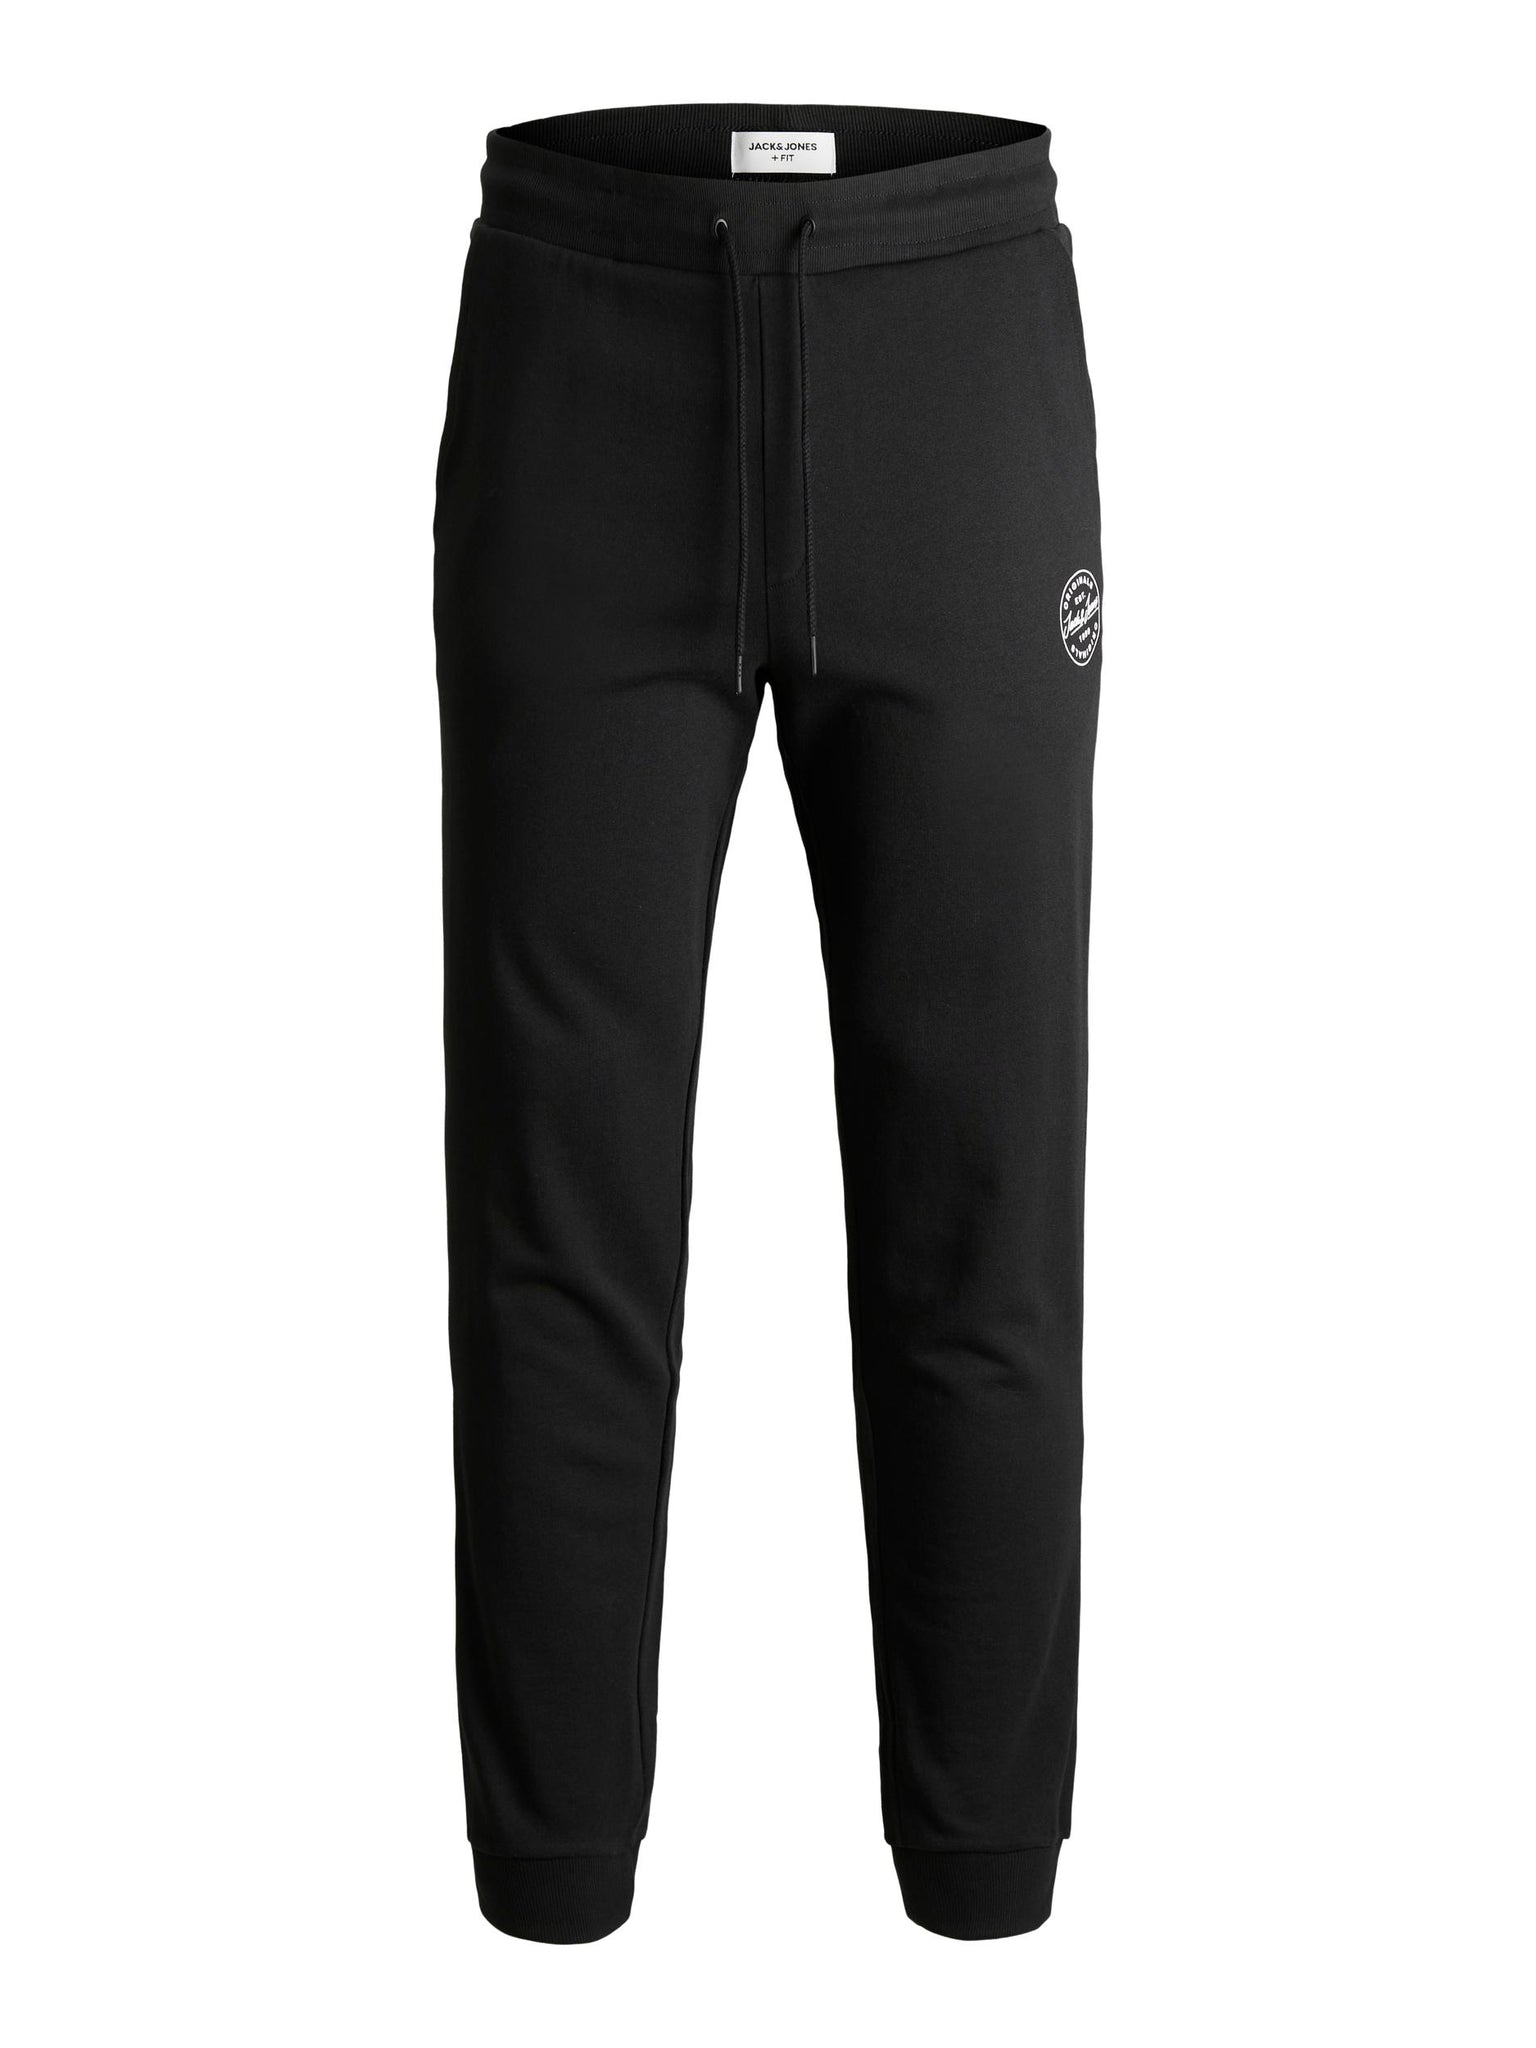 Jack and Jones Herren Jogger Schwarz Starke Kerle